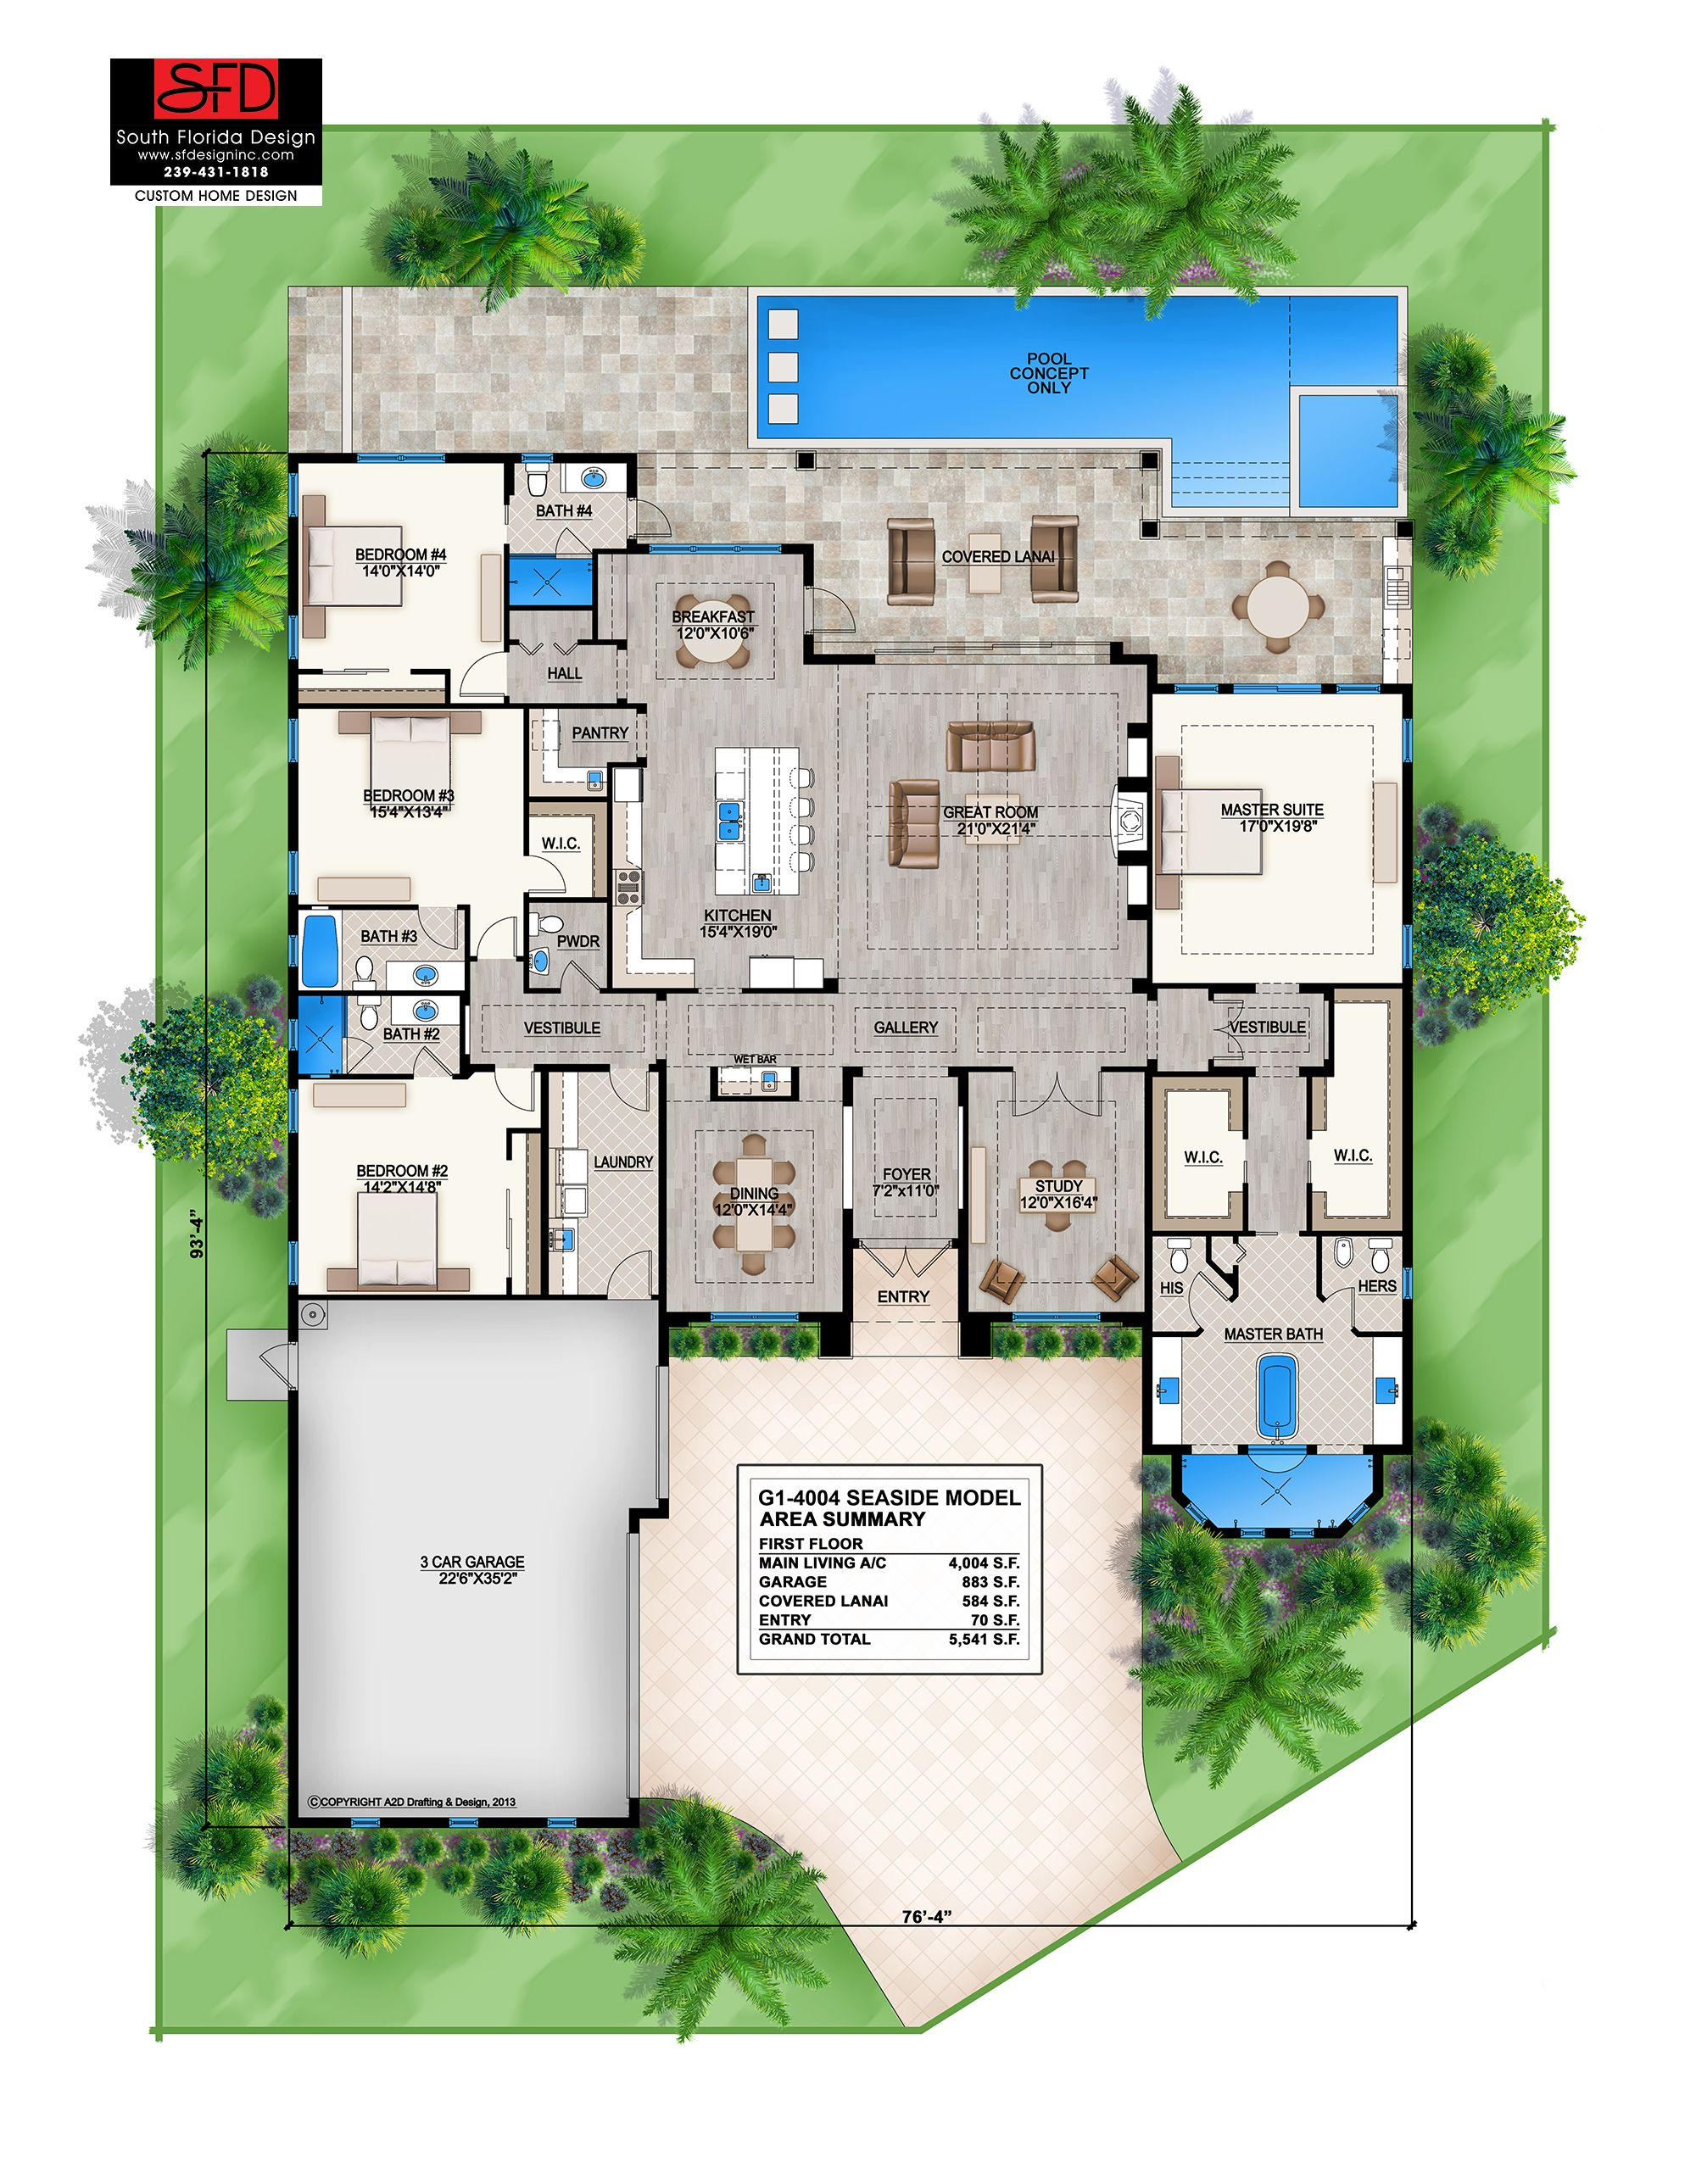 Coastal contemporary 1 floor home design features 4 bedrooms, 4.5 ...